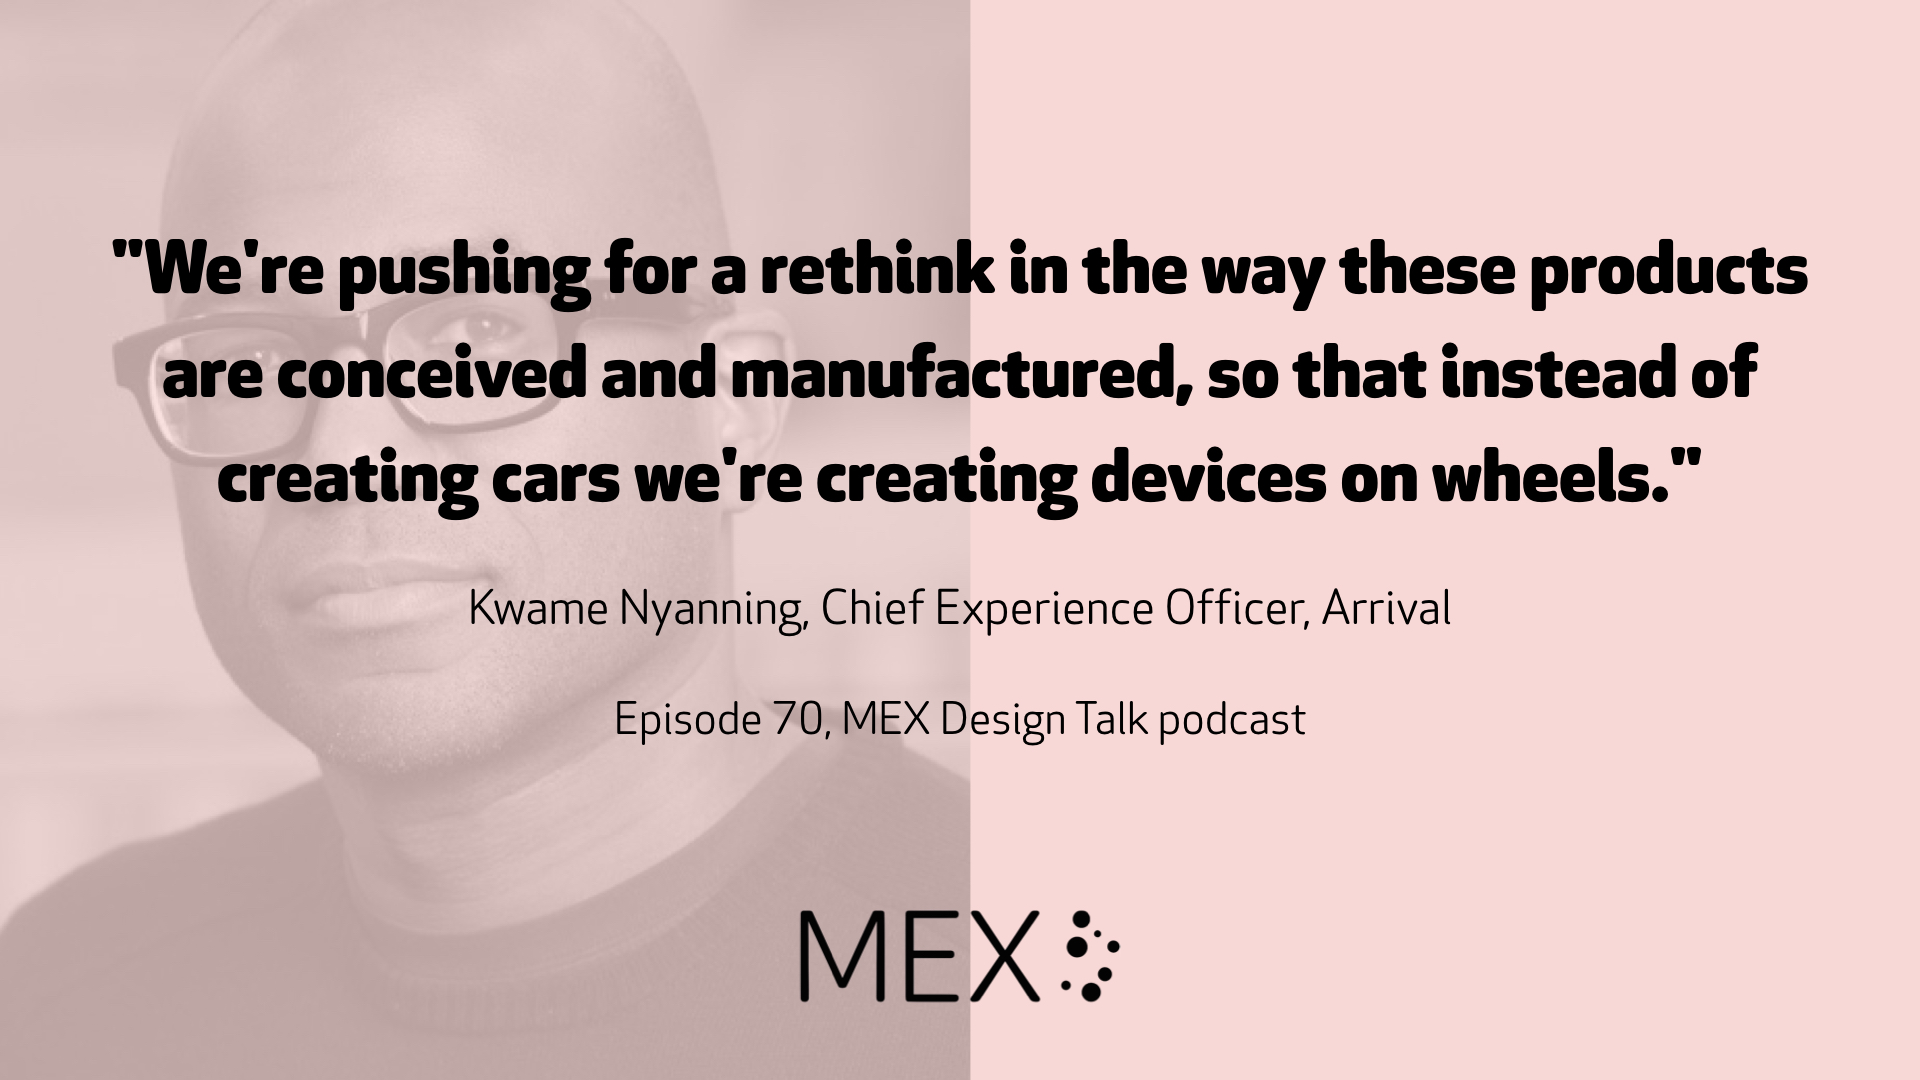 """We're pushing for a rethink in the way these products are conceived and manufactured, so that instead of creating cars we're creating devices on wheels.""  Kwame Nyanning, Chief Experience Officer, Arrival  Episode 70, MEX Design Talk podcast"